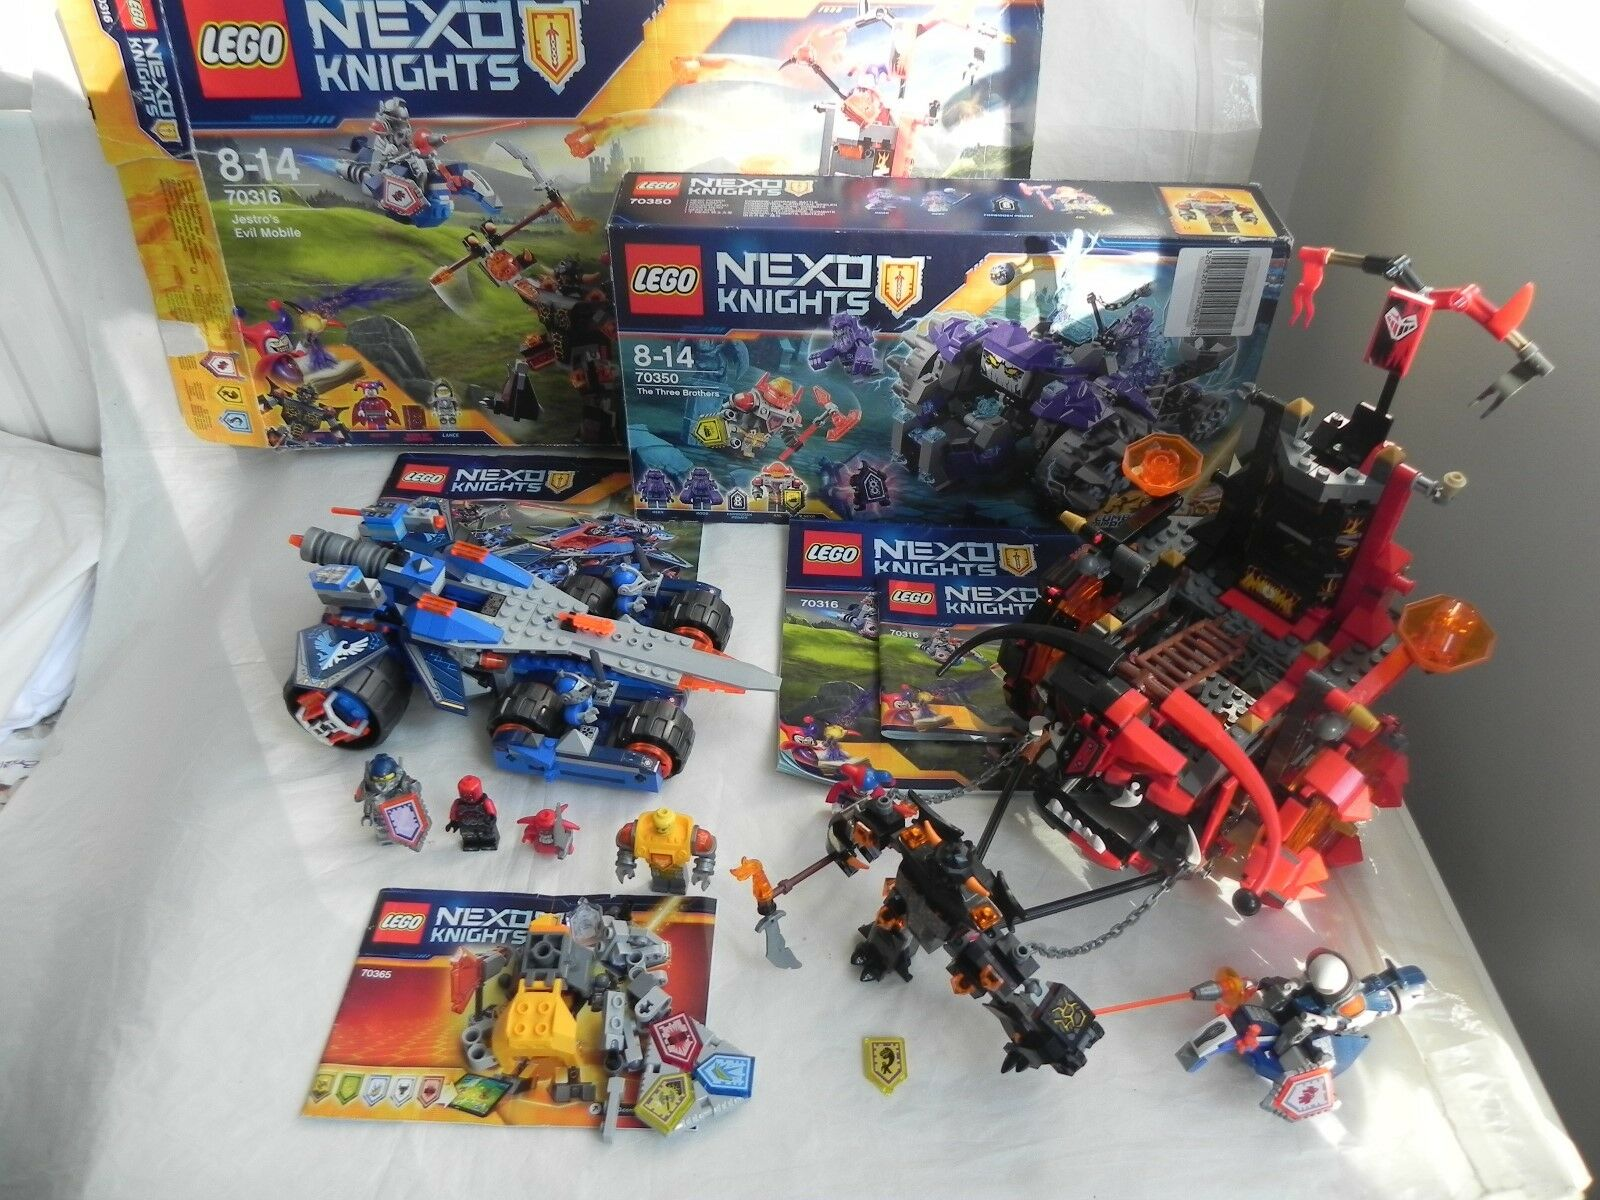 Lego Nexo Knights Bundle Lot 70315, 70316, 70350, 70365